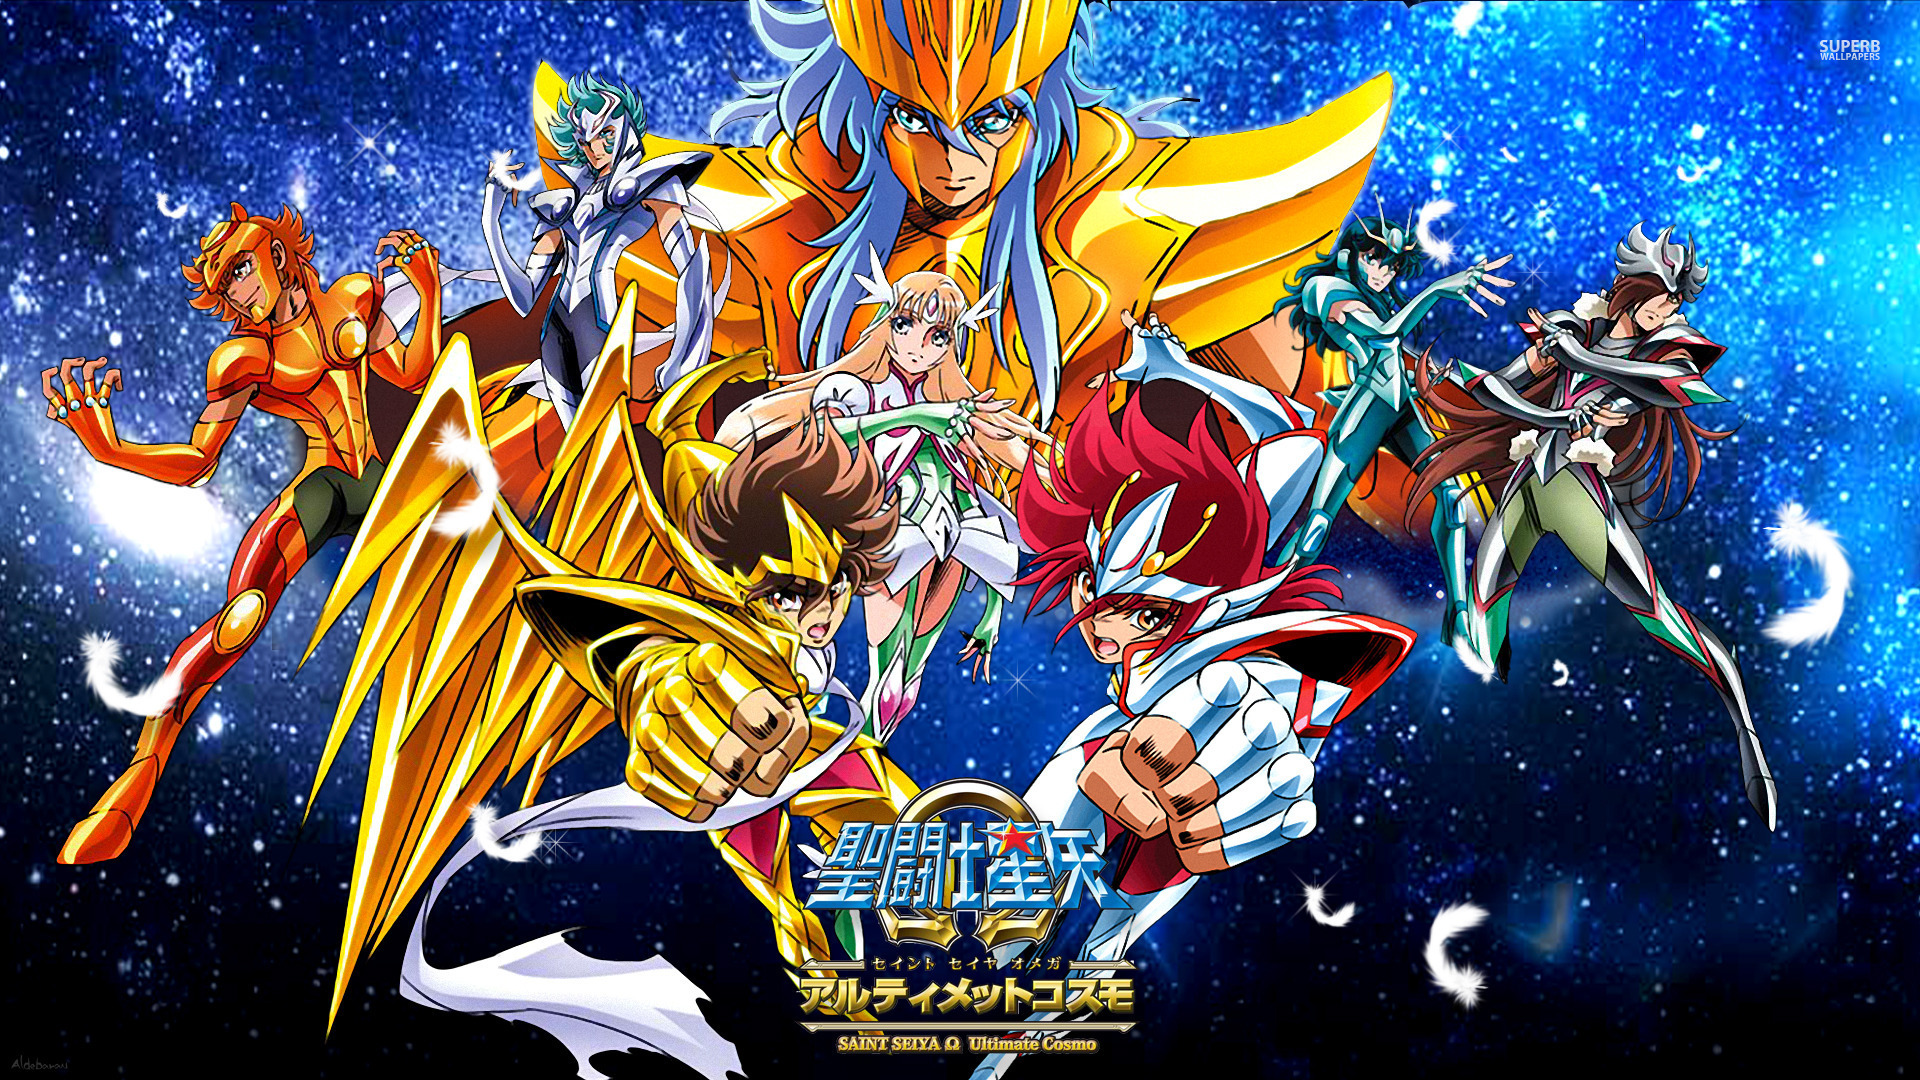 Saint Seiya HD Wallpaper